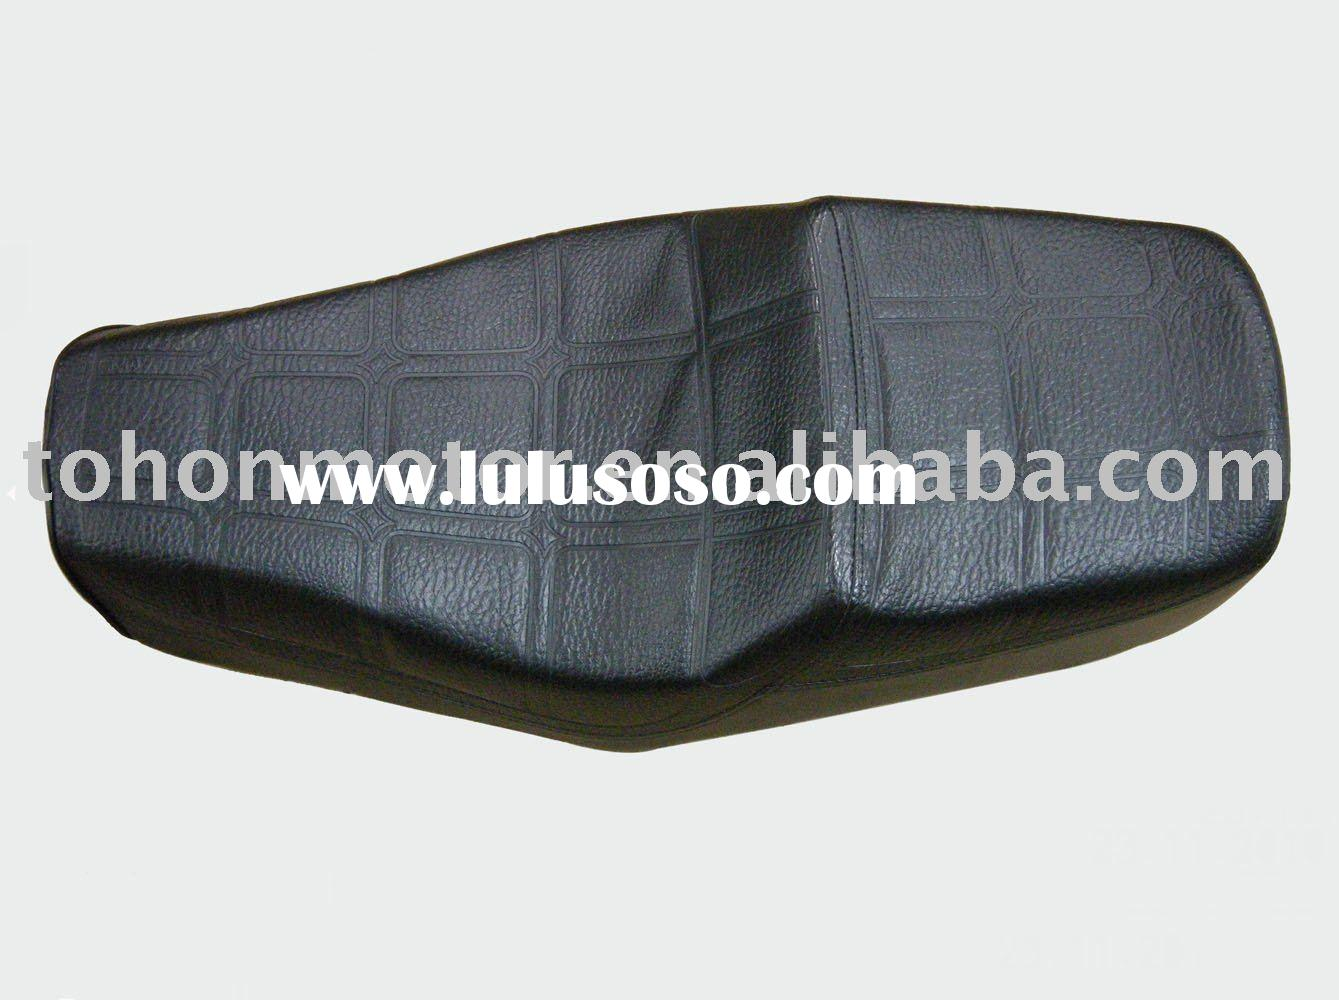 CUSHION FOR MOTORCYCLE 125KT, leather, foam or plastic material